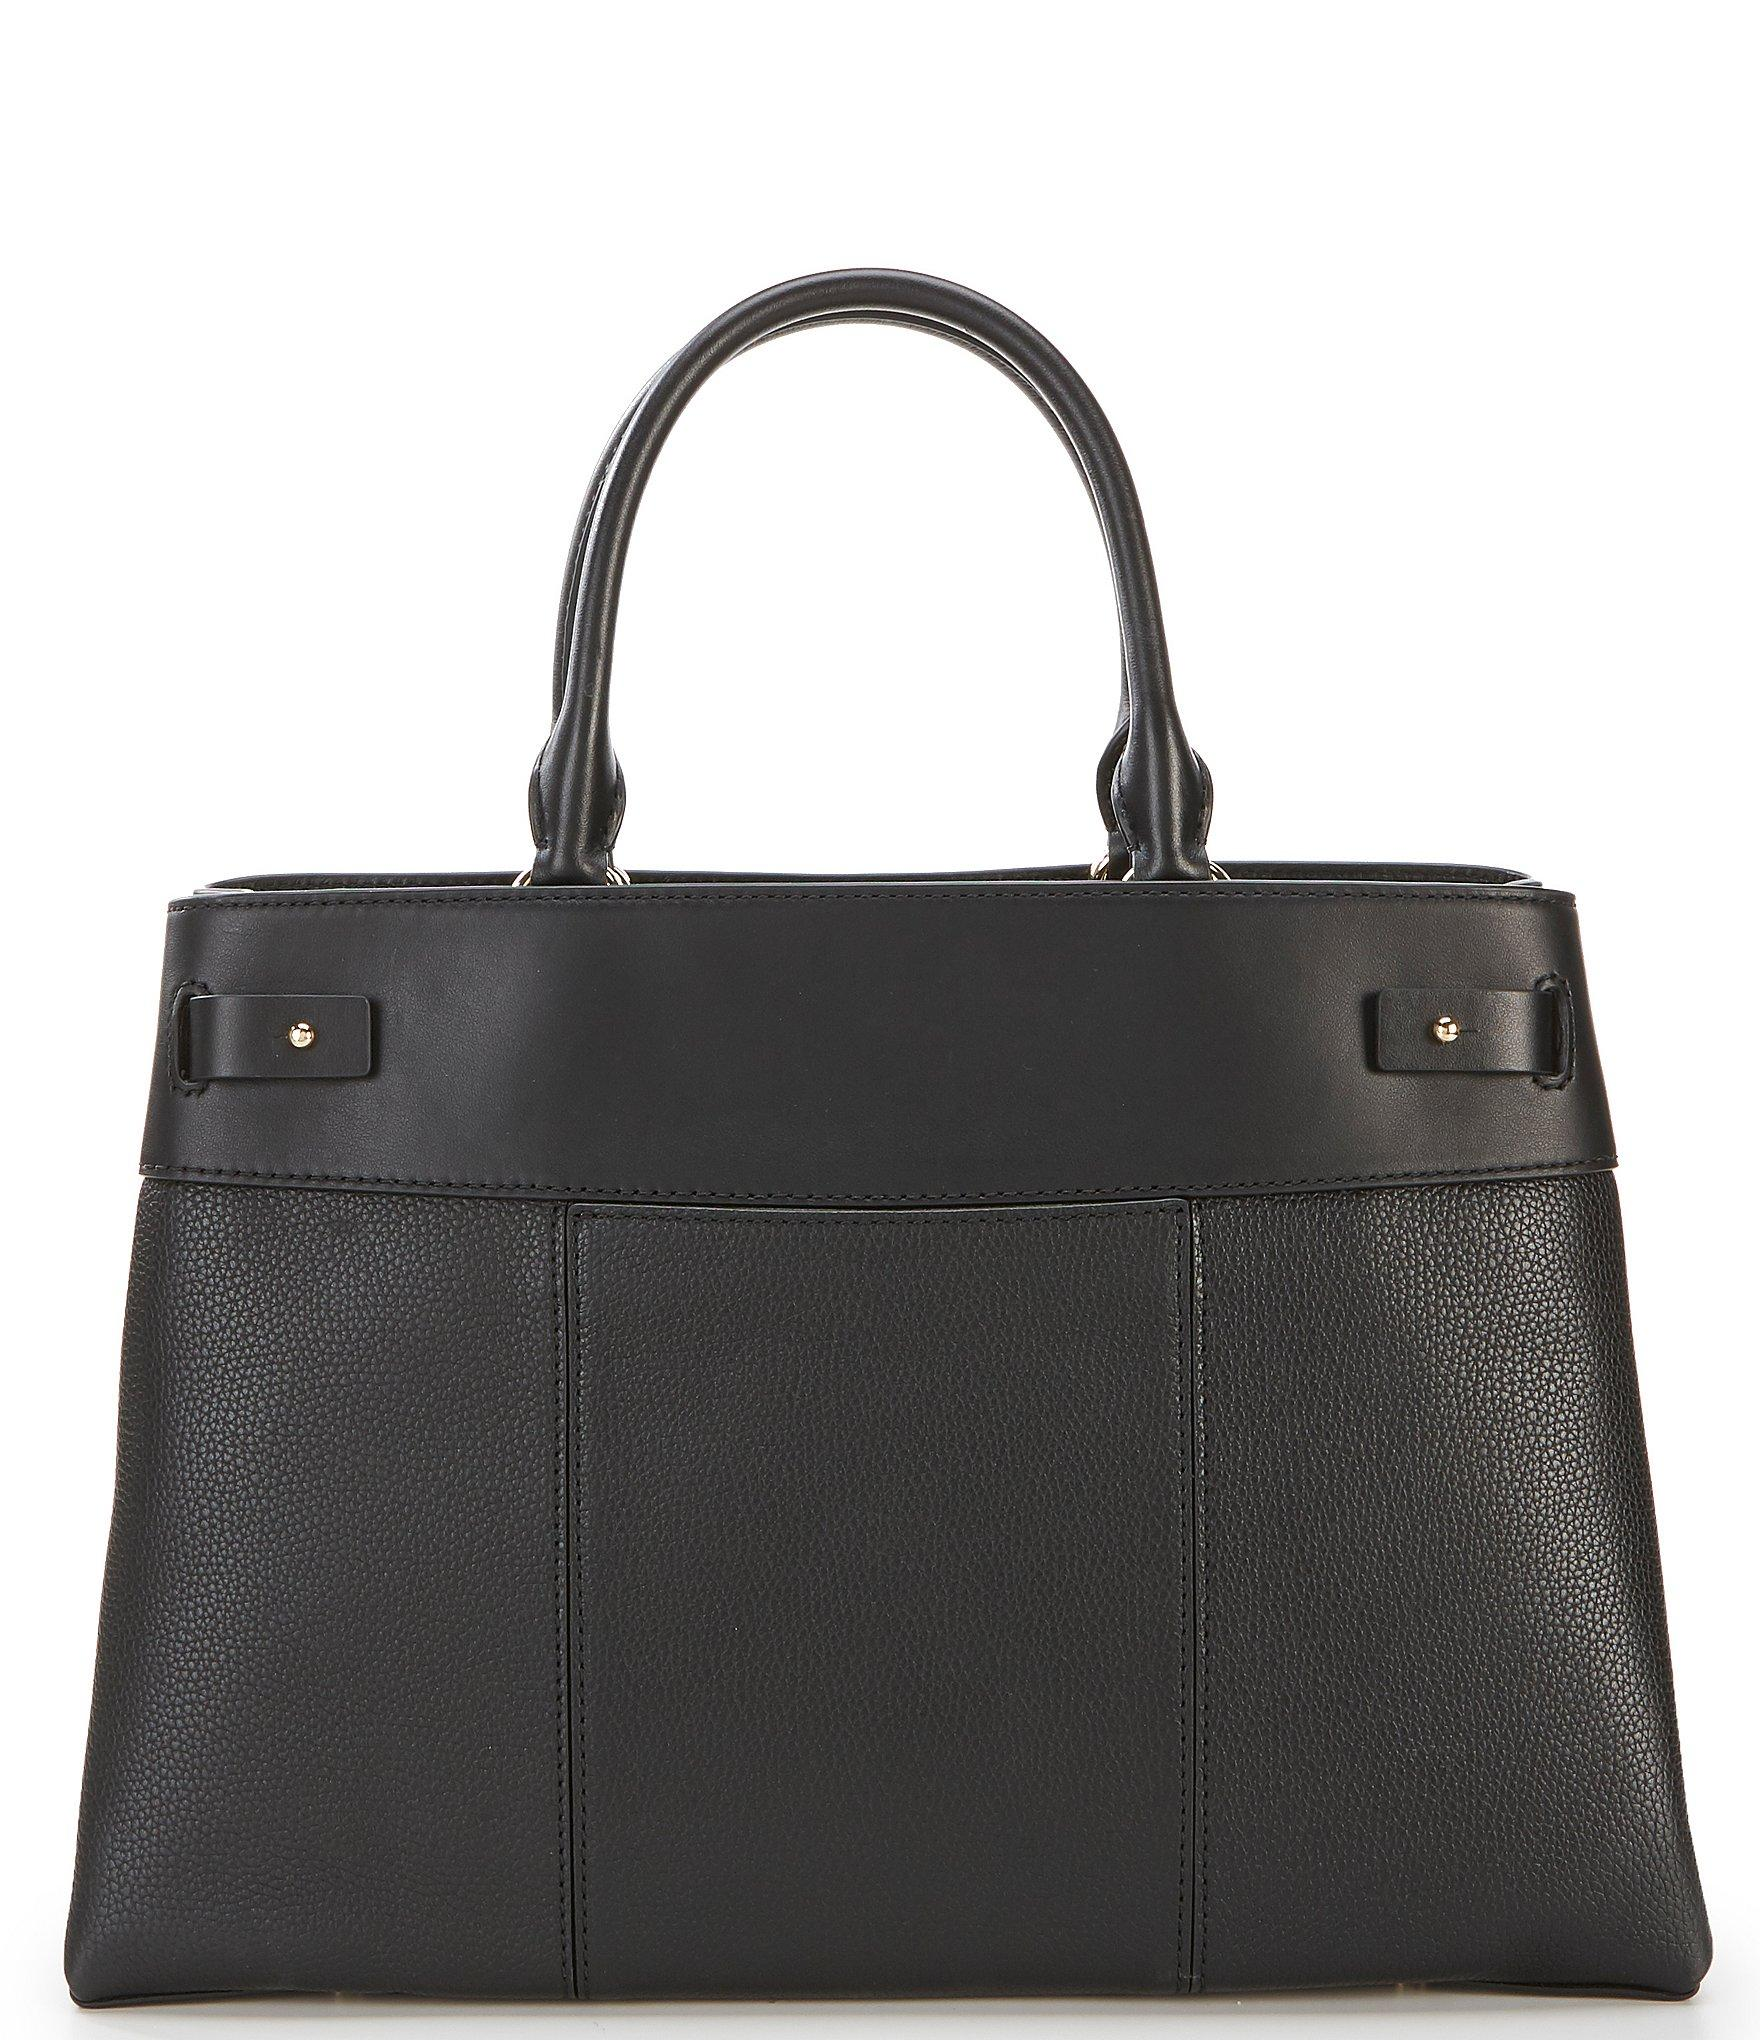 34390c53dc50 Michael Kors - Black Michael Gramercy Polished Leather Satchel - Lyst. View  fullscreen